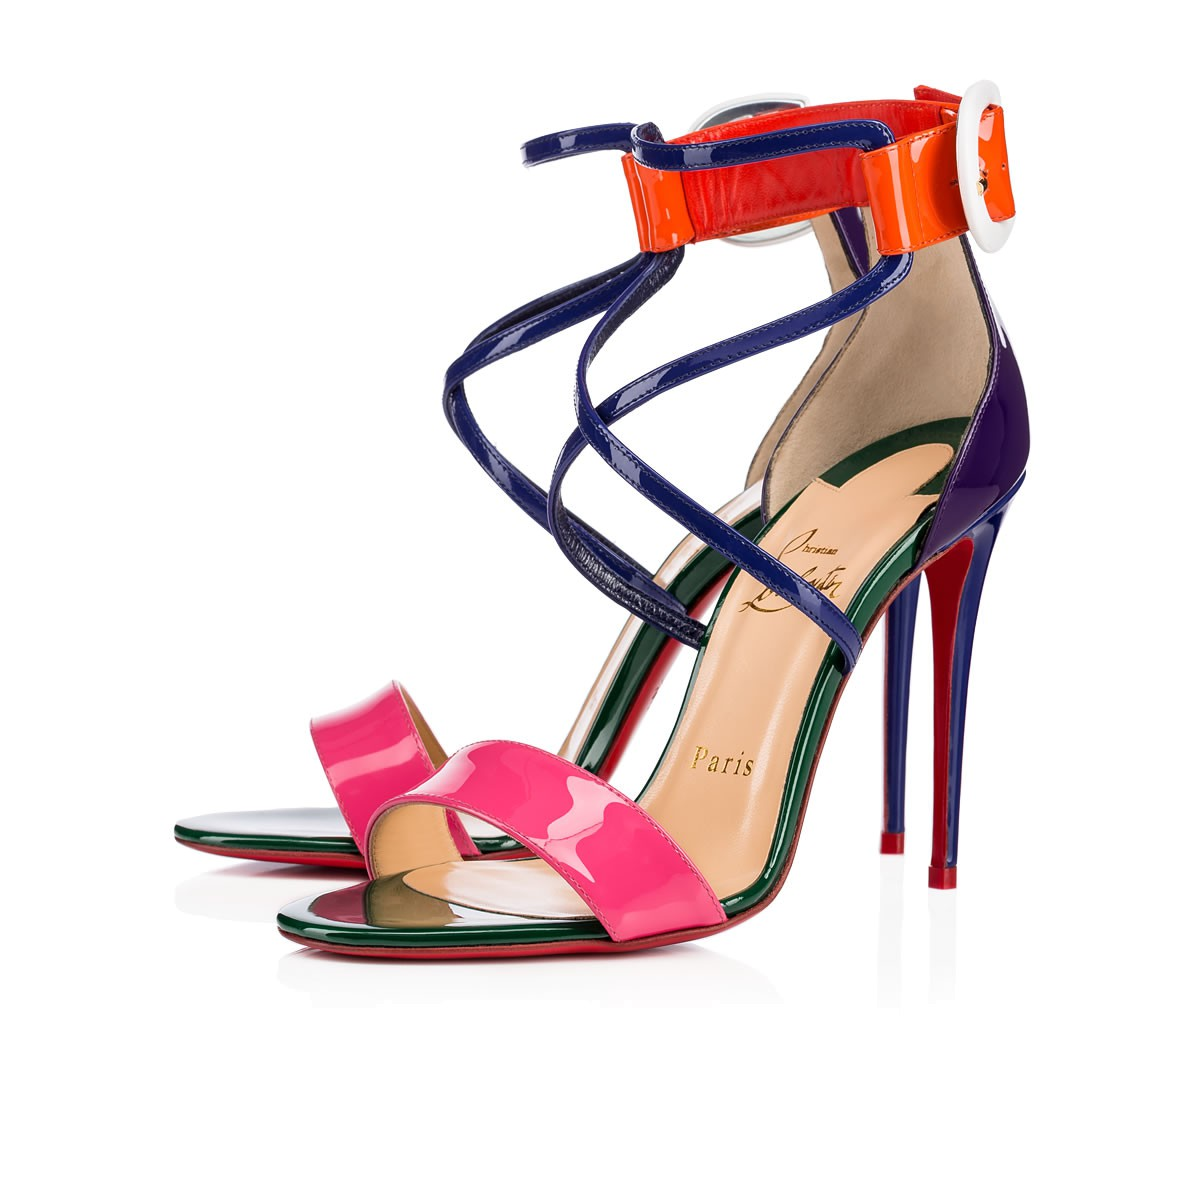 Clearance Explore Clearance Pictures Christian Louboutin 2017 Patent Choca Sandals Reliable Cheap Online QfxQUpnmY